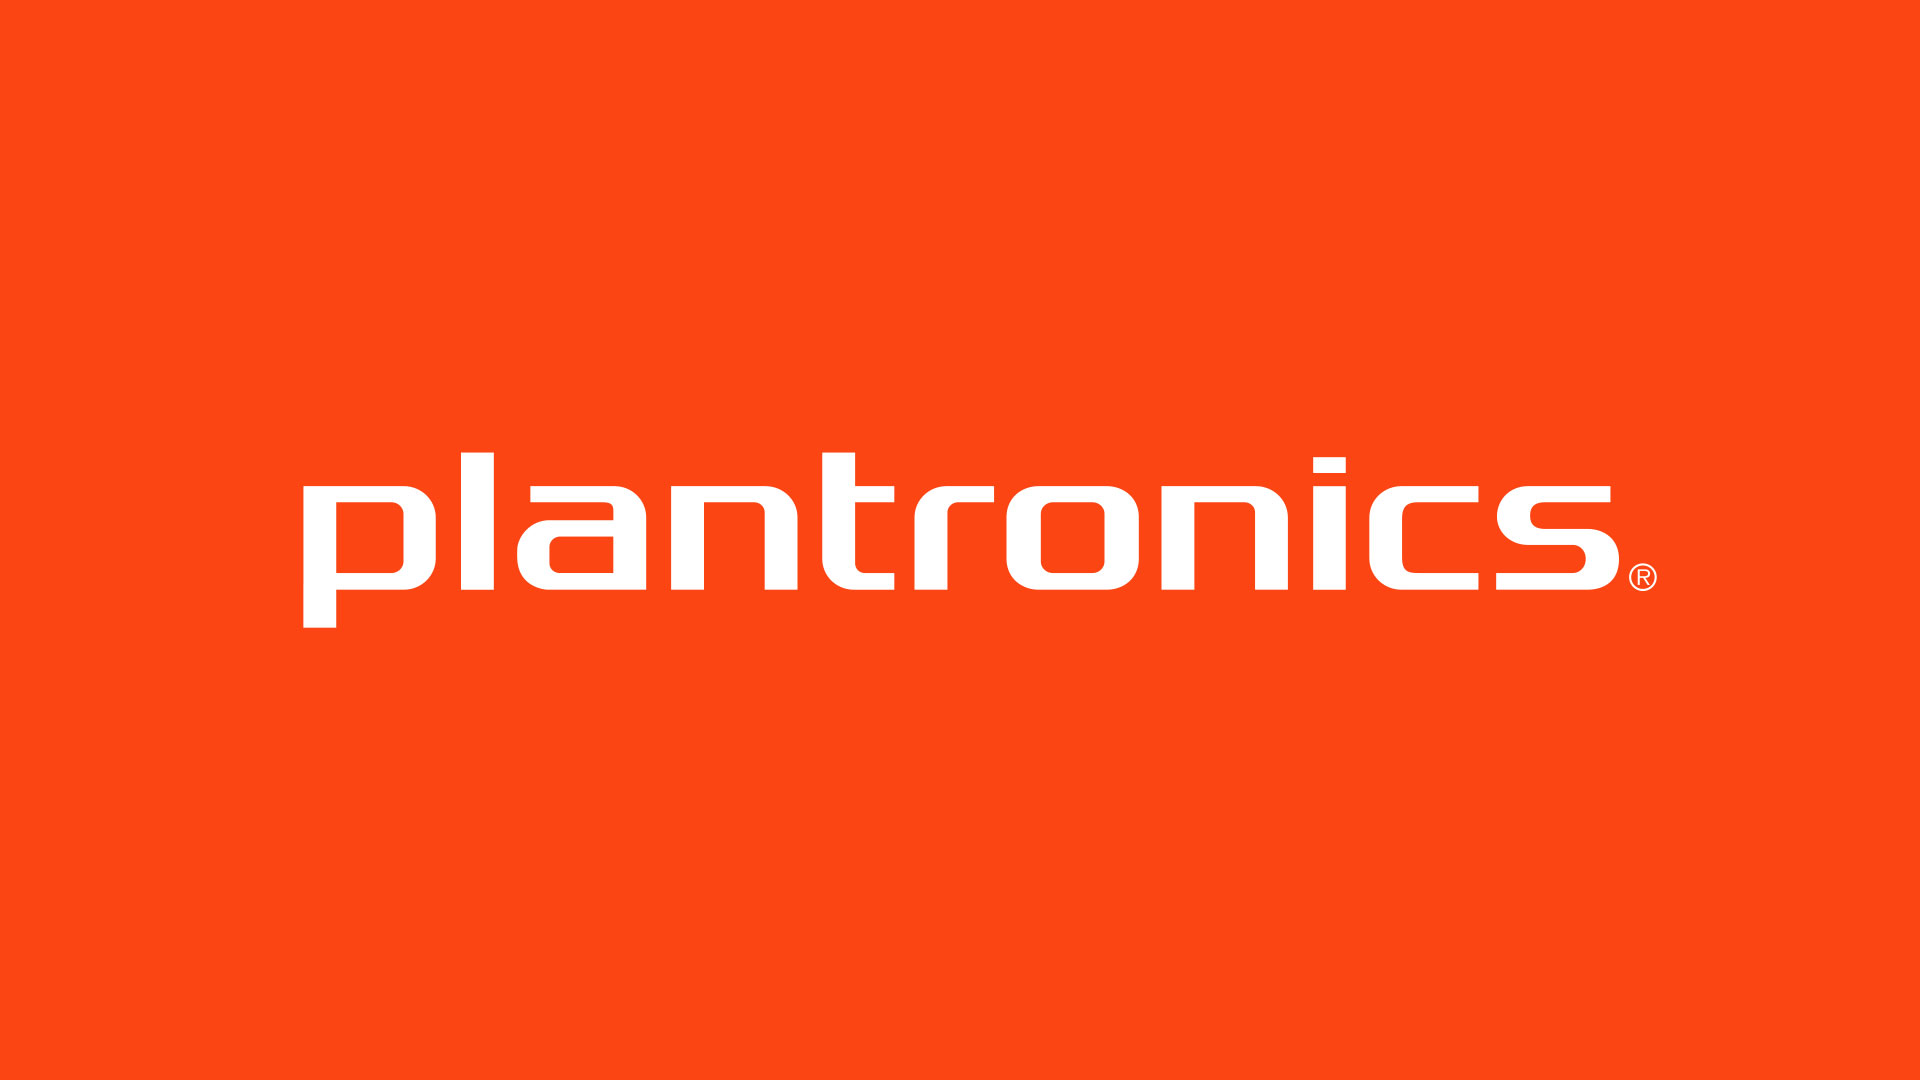 Gamescom 2017: hands-on with Plantronics and Dolby Atmos